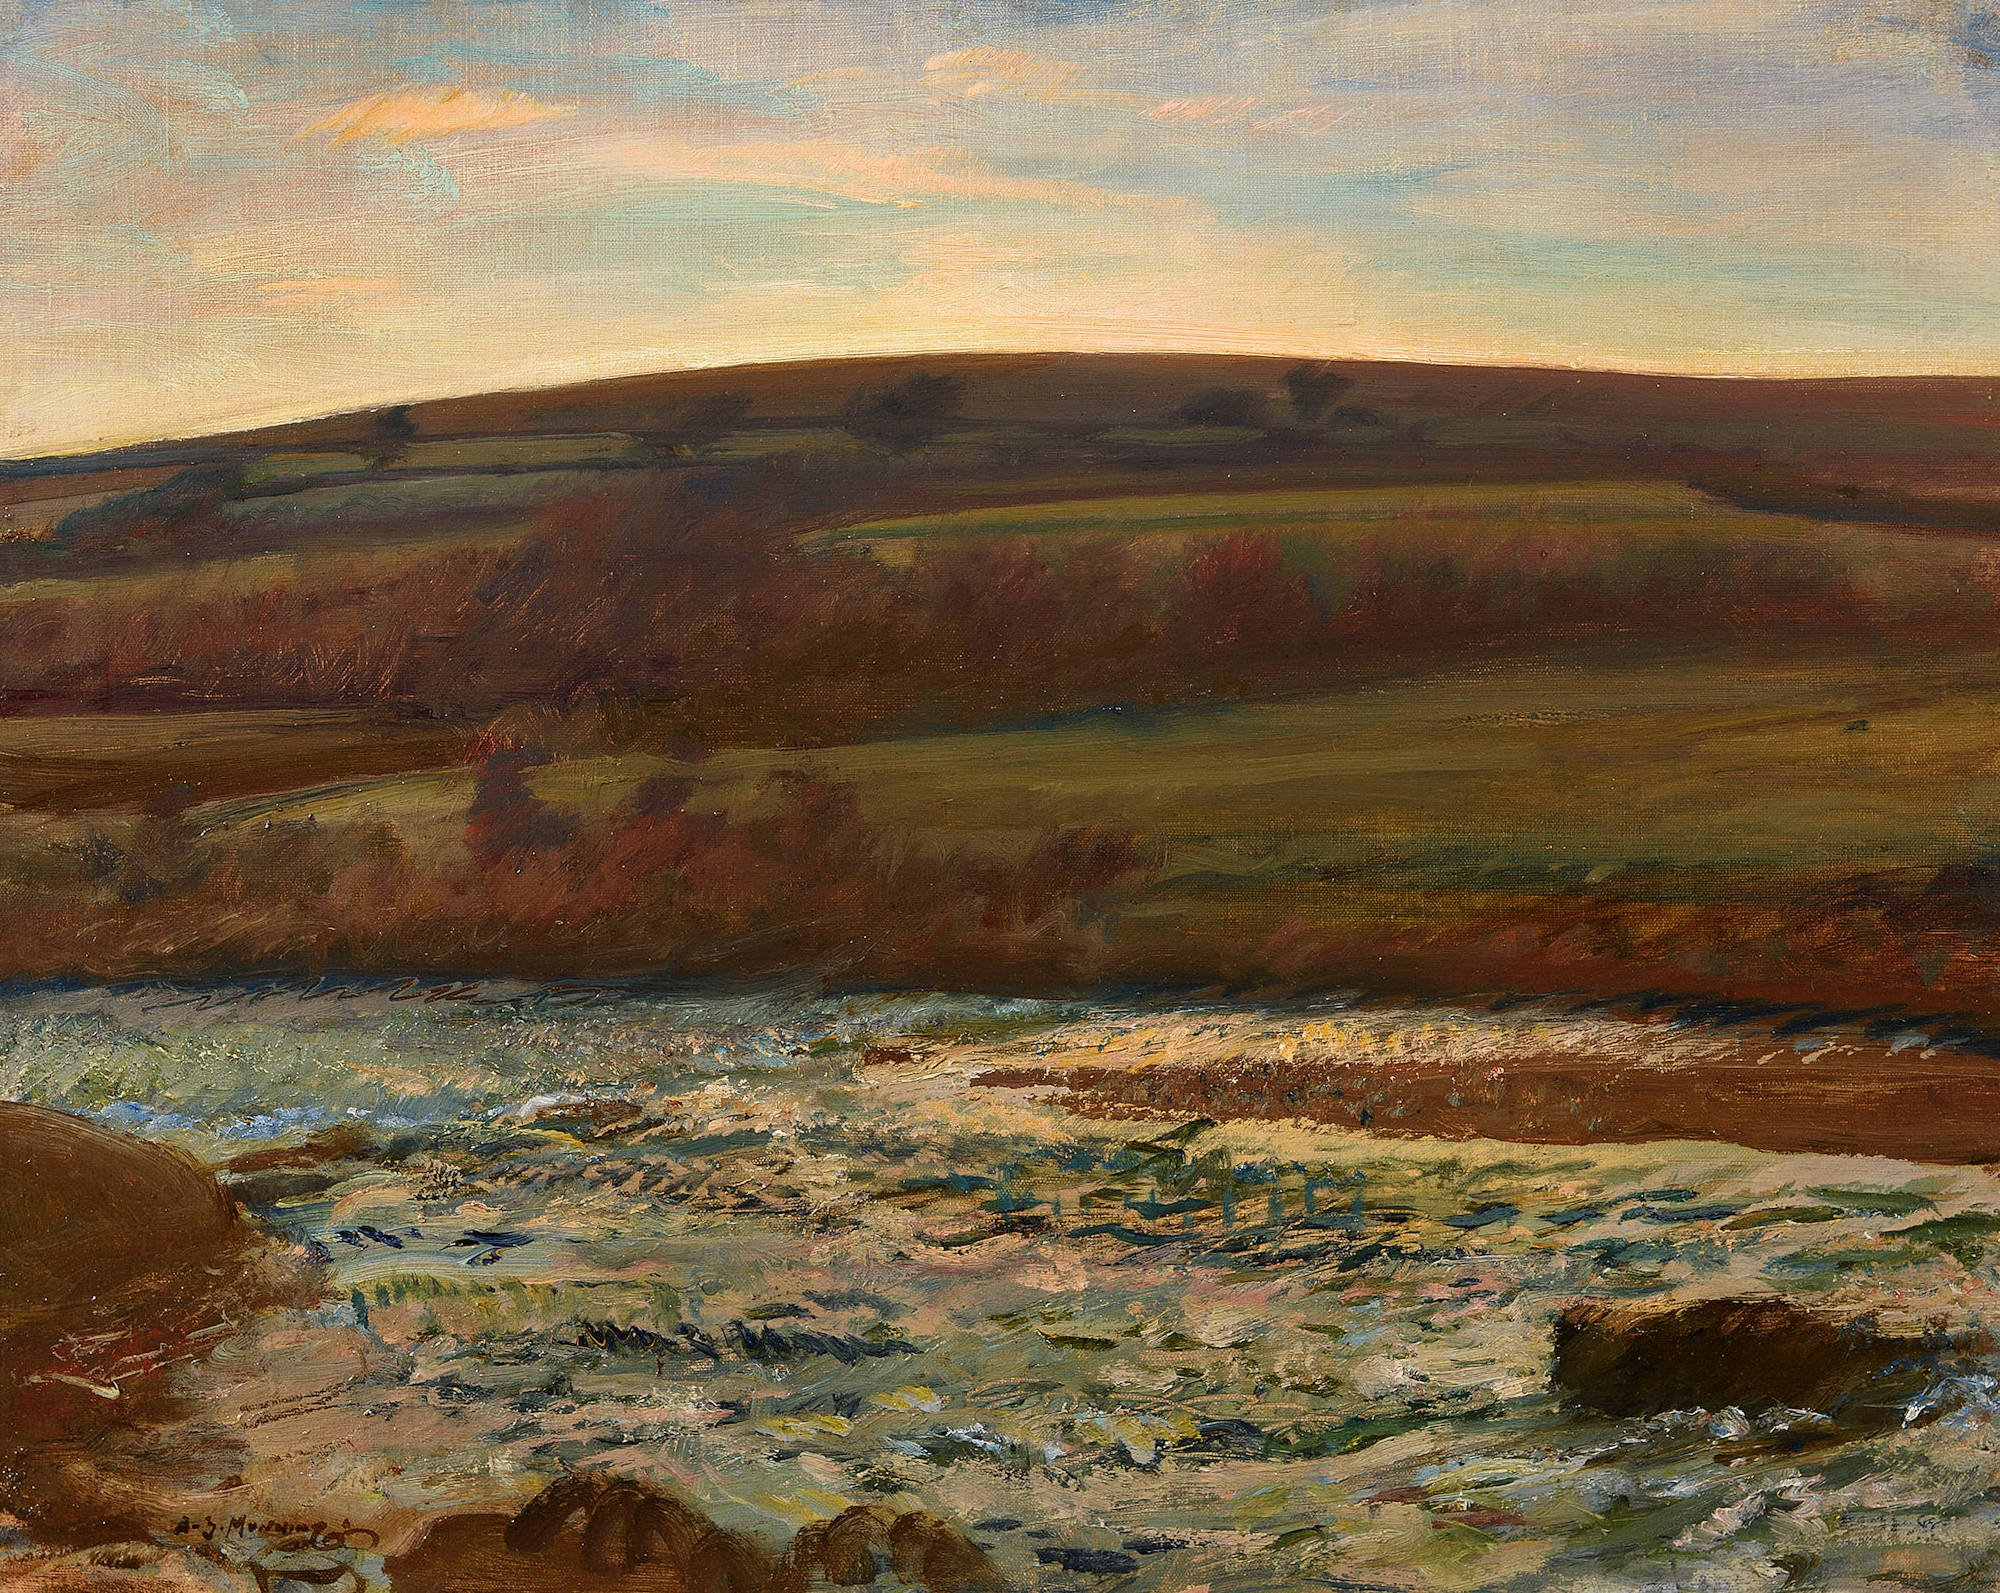 landscape painting of a river flowing beneath autumnal hills